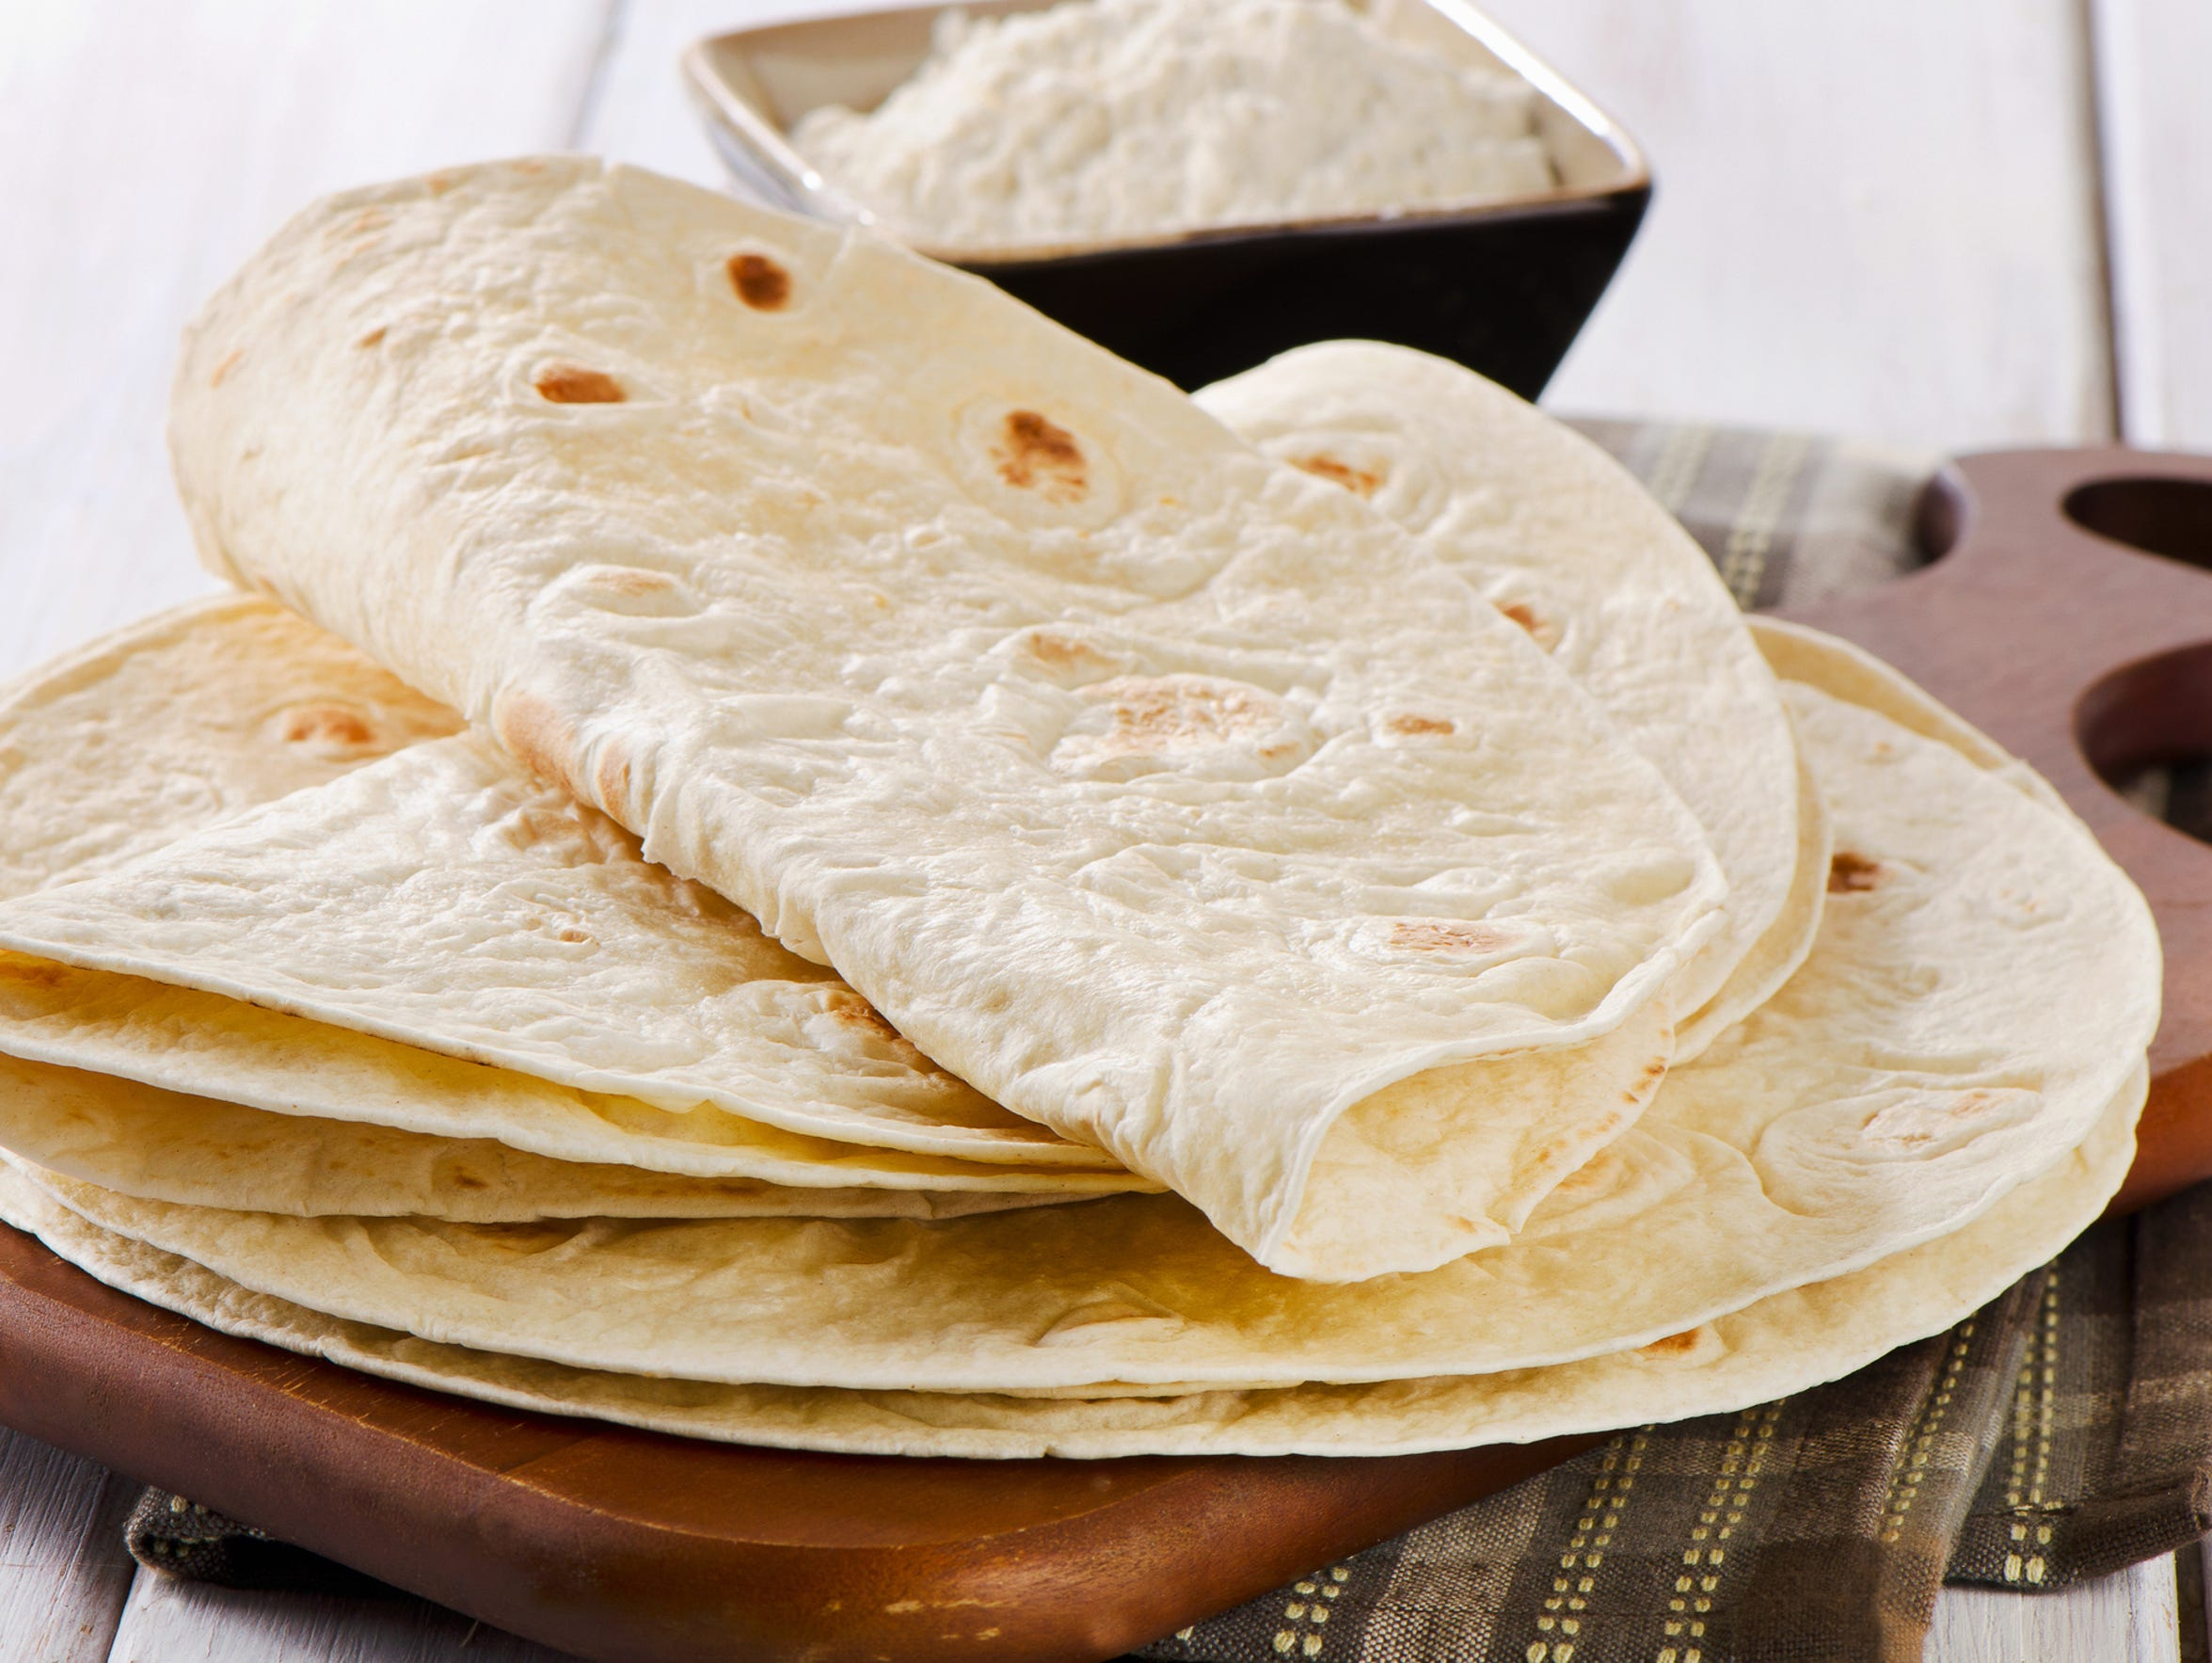 Tortillas can be used to make kid-friendly snacks and